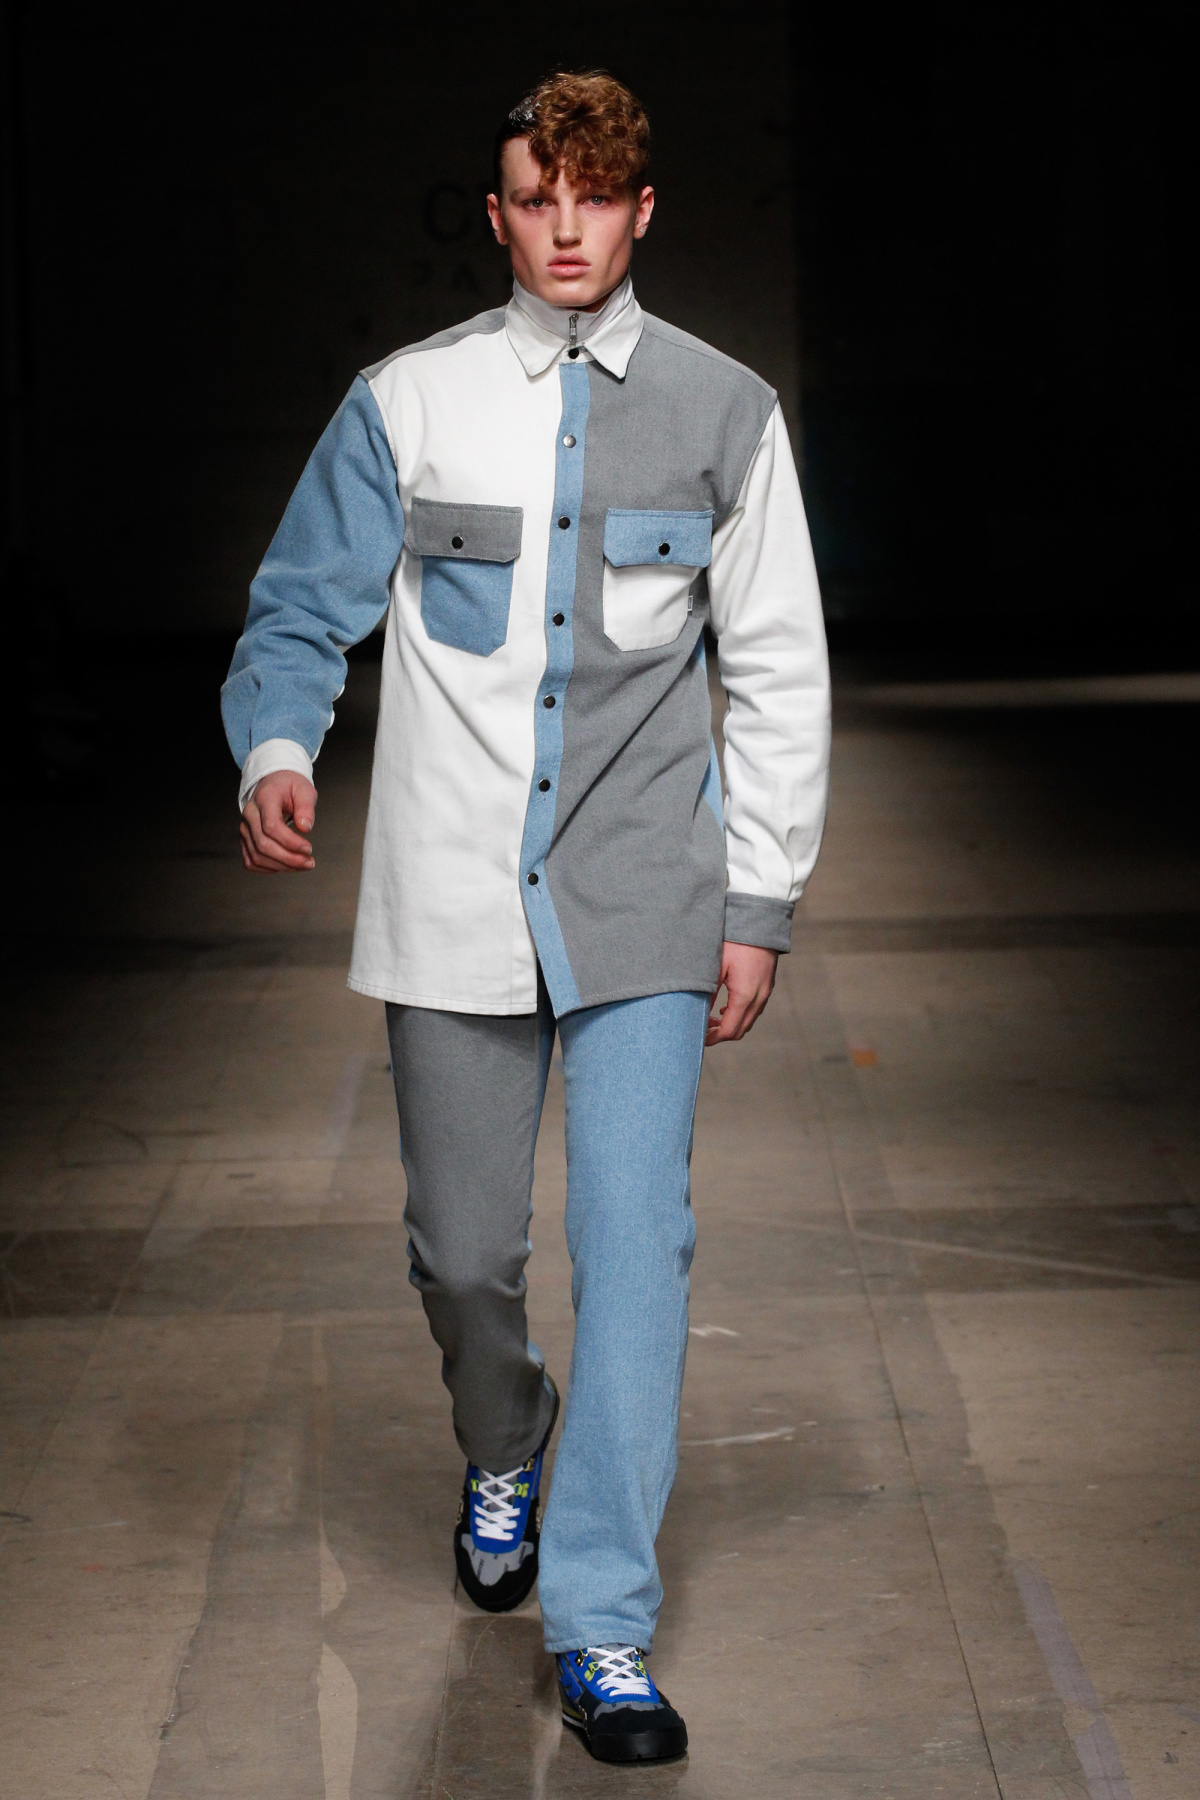 christopher_shannon_look_2_2017_aw_mens.jpeg